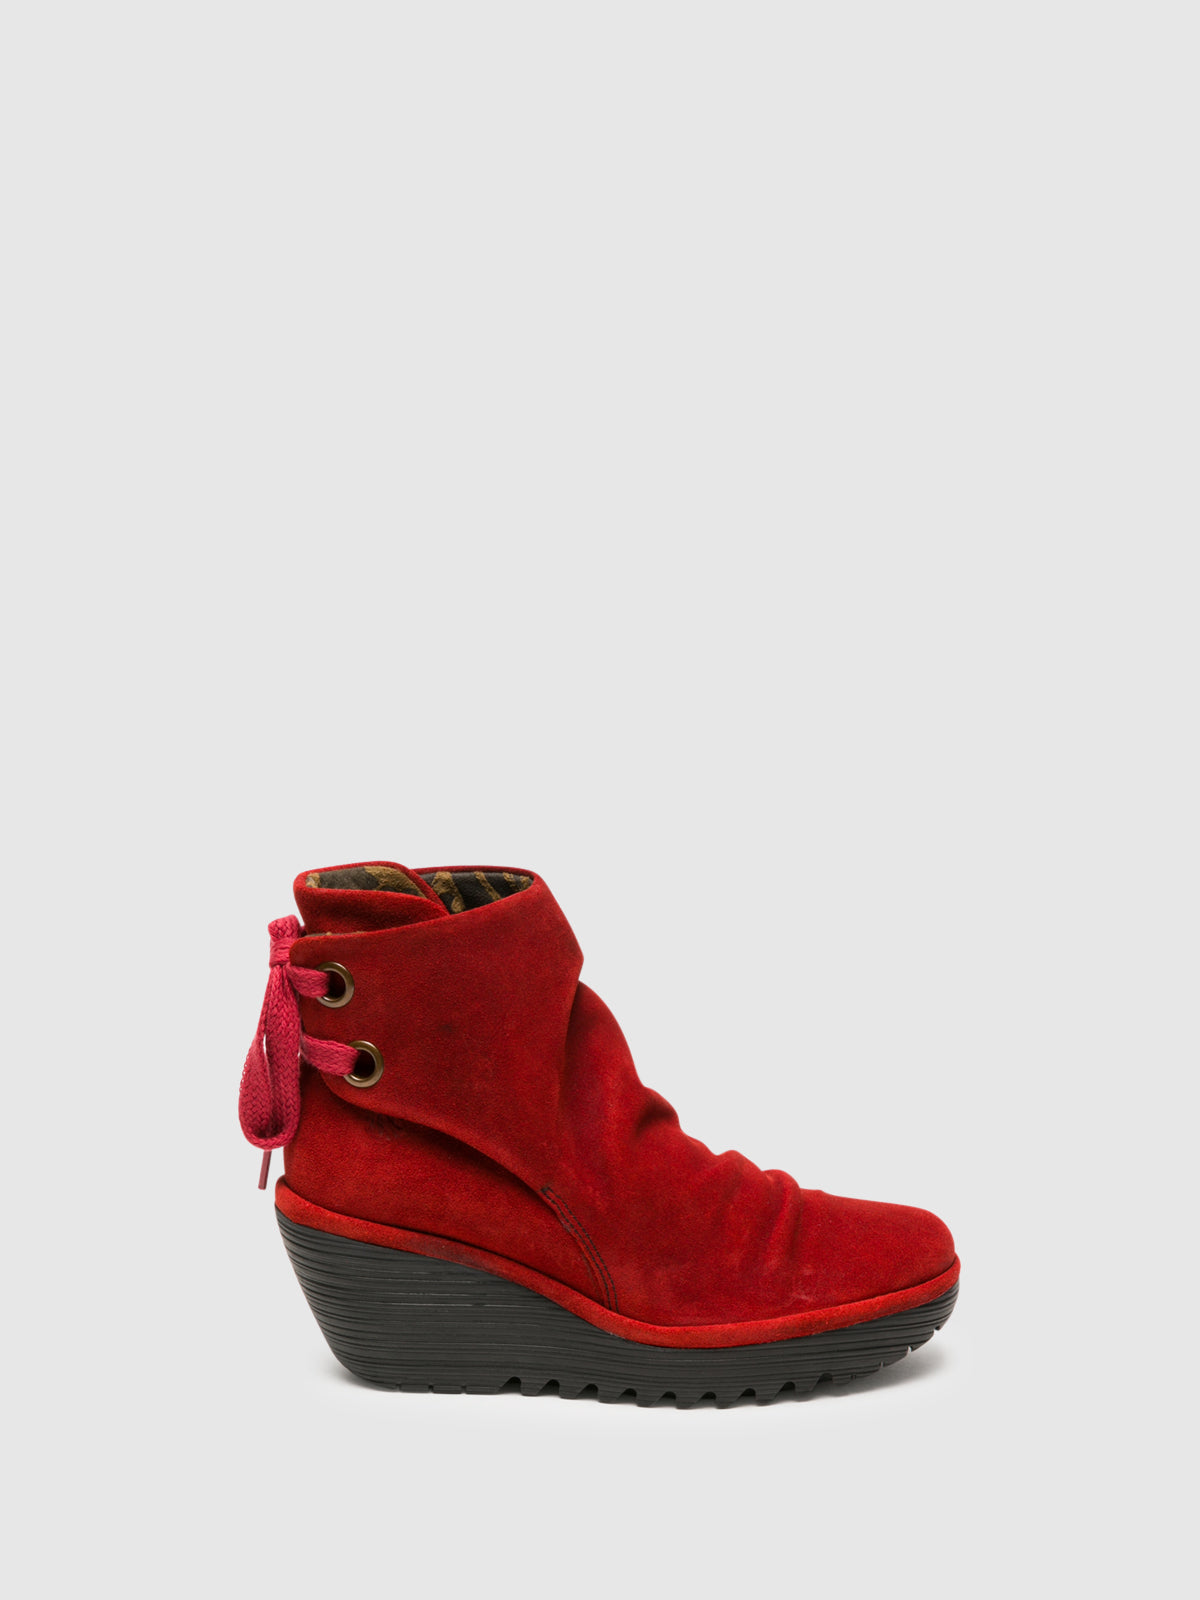 Fly London Red Wedge Ankle Boots